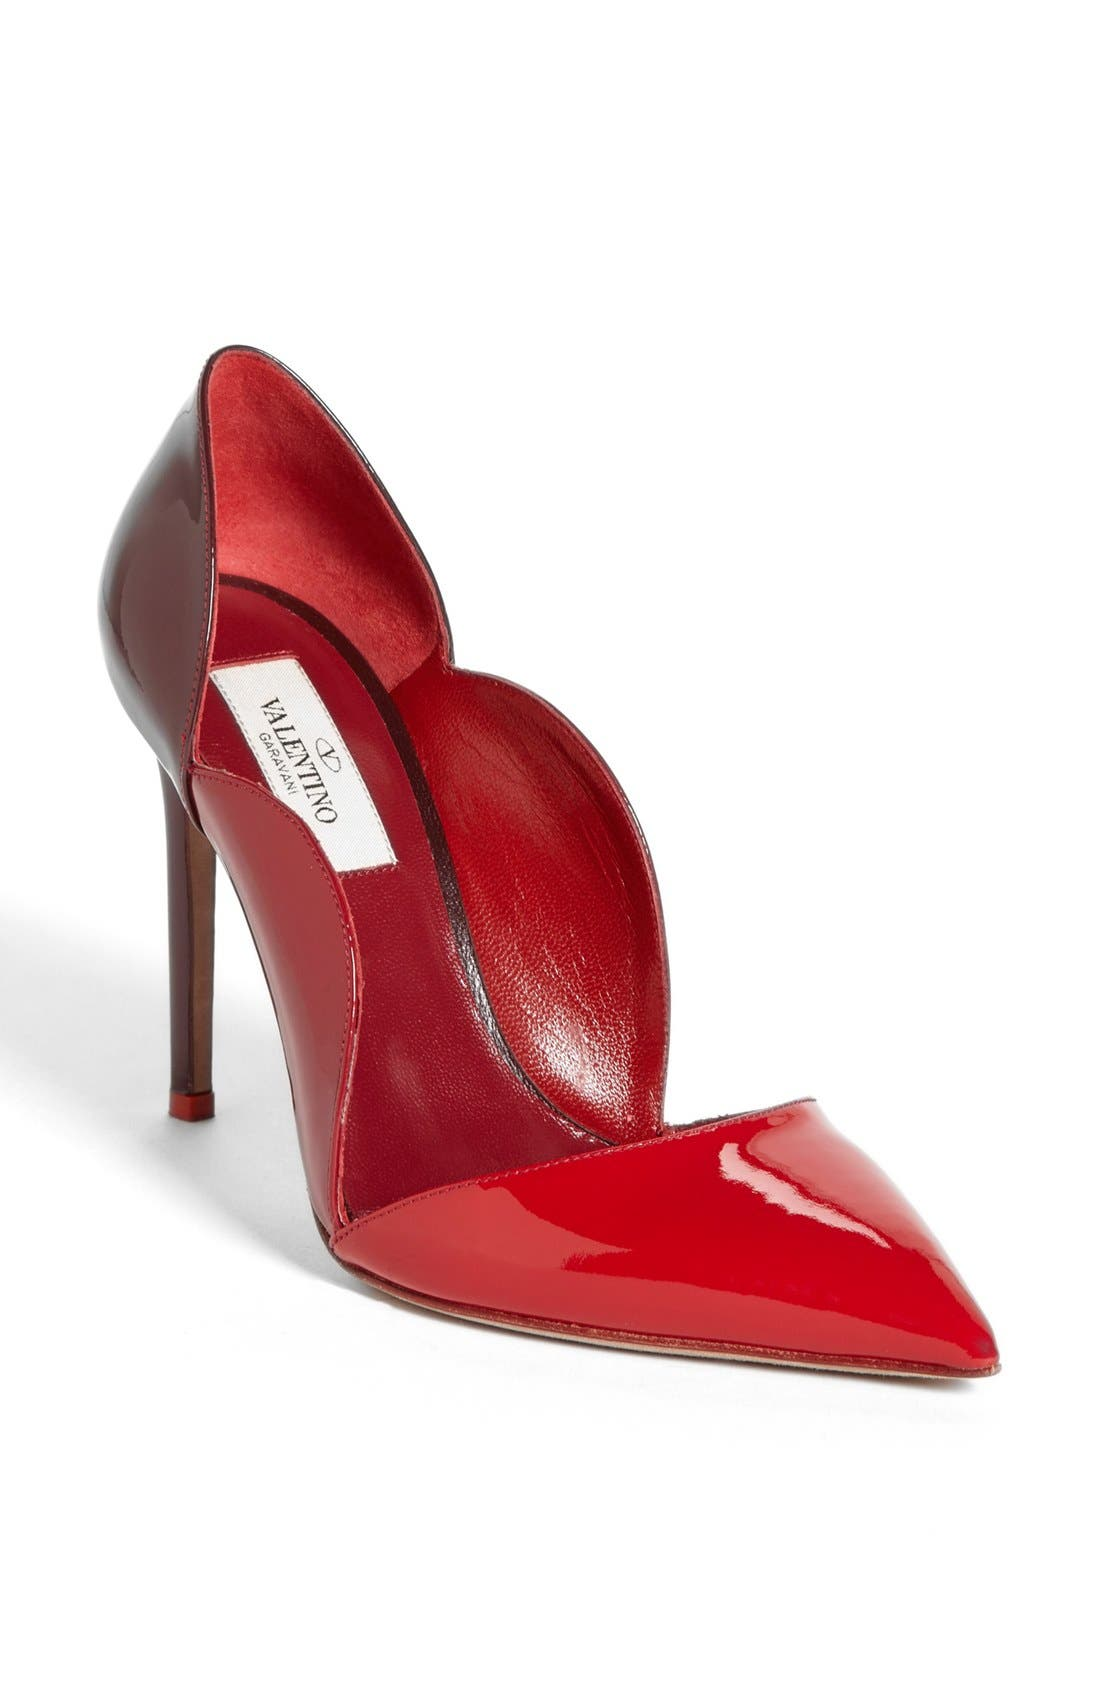 Alternate Image 1 Selected - VALENTINO GARAVANI Scalloped Pump